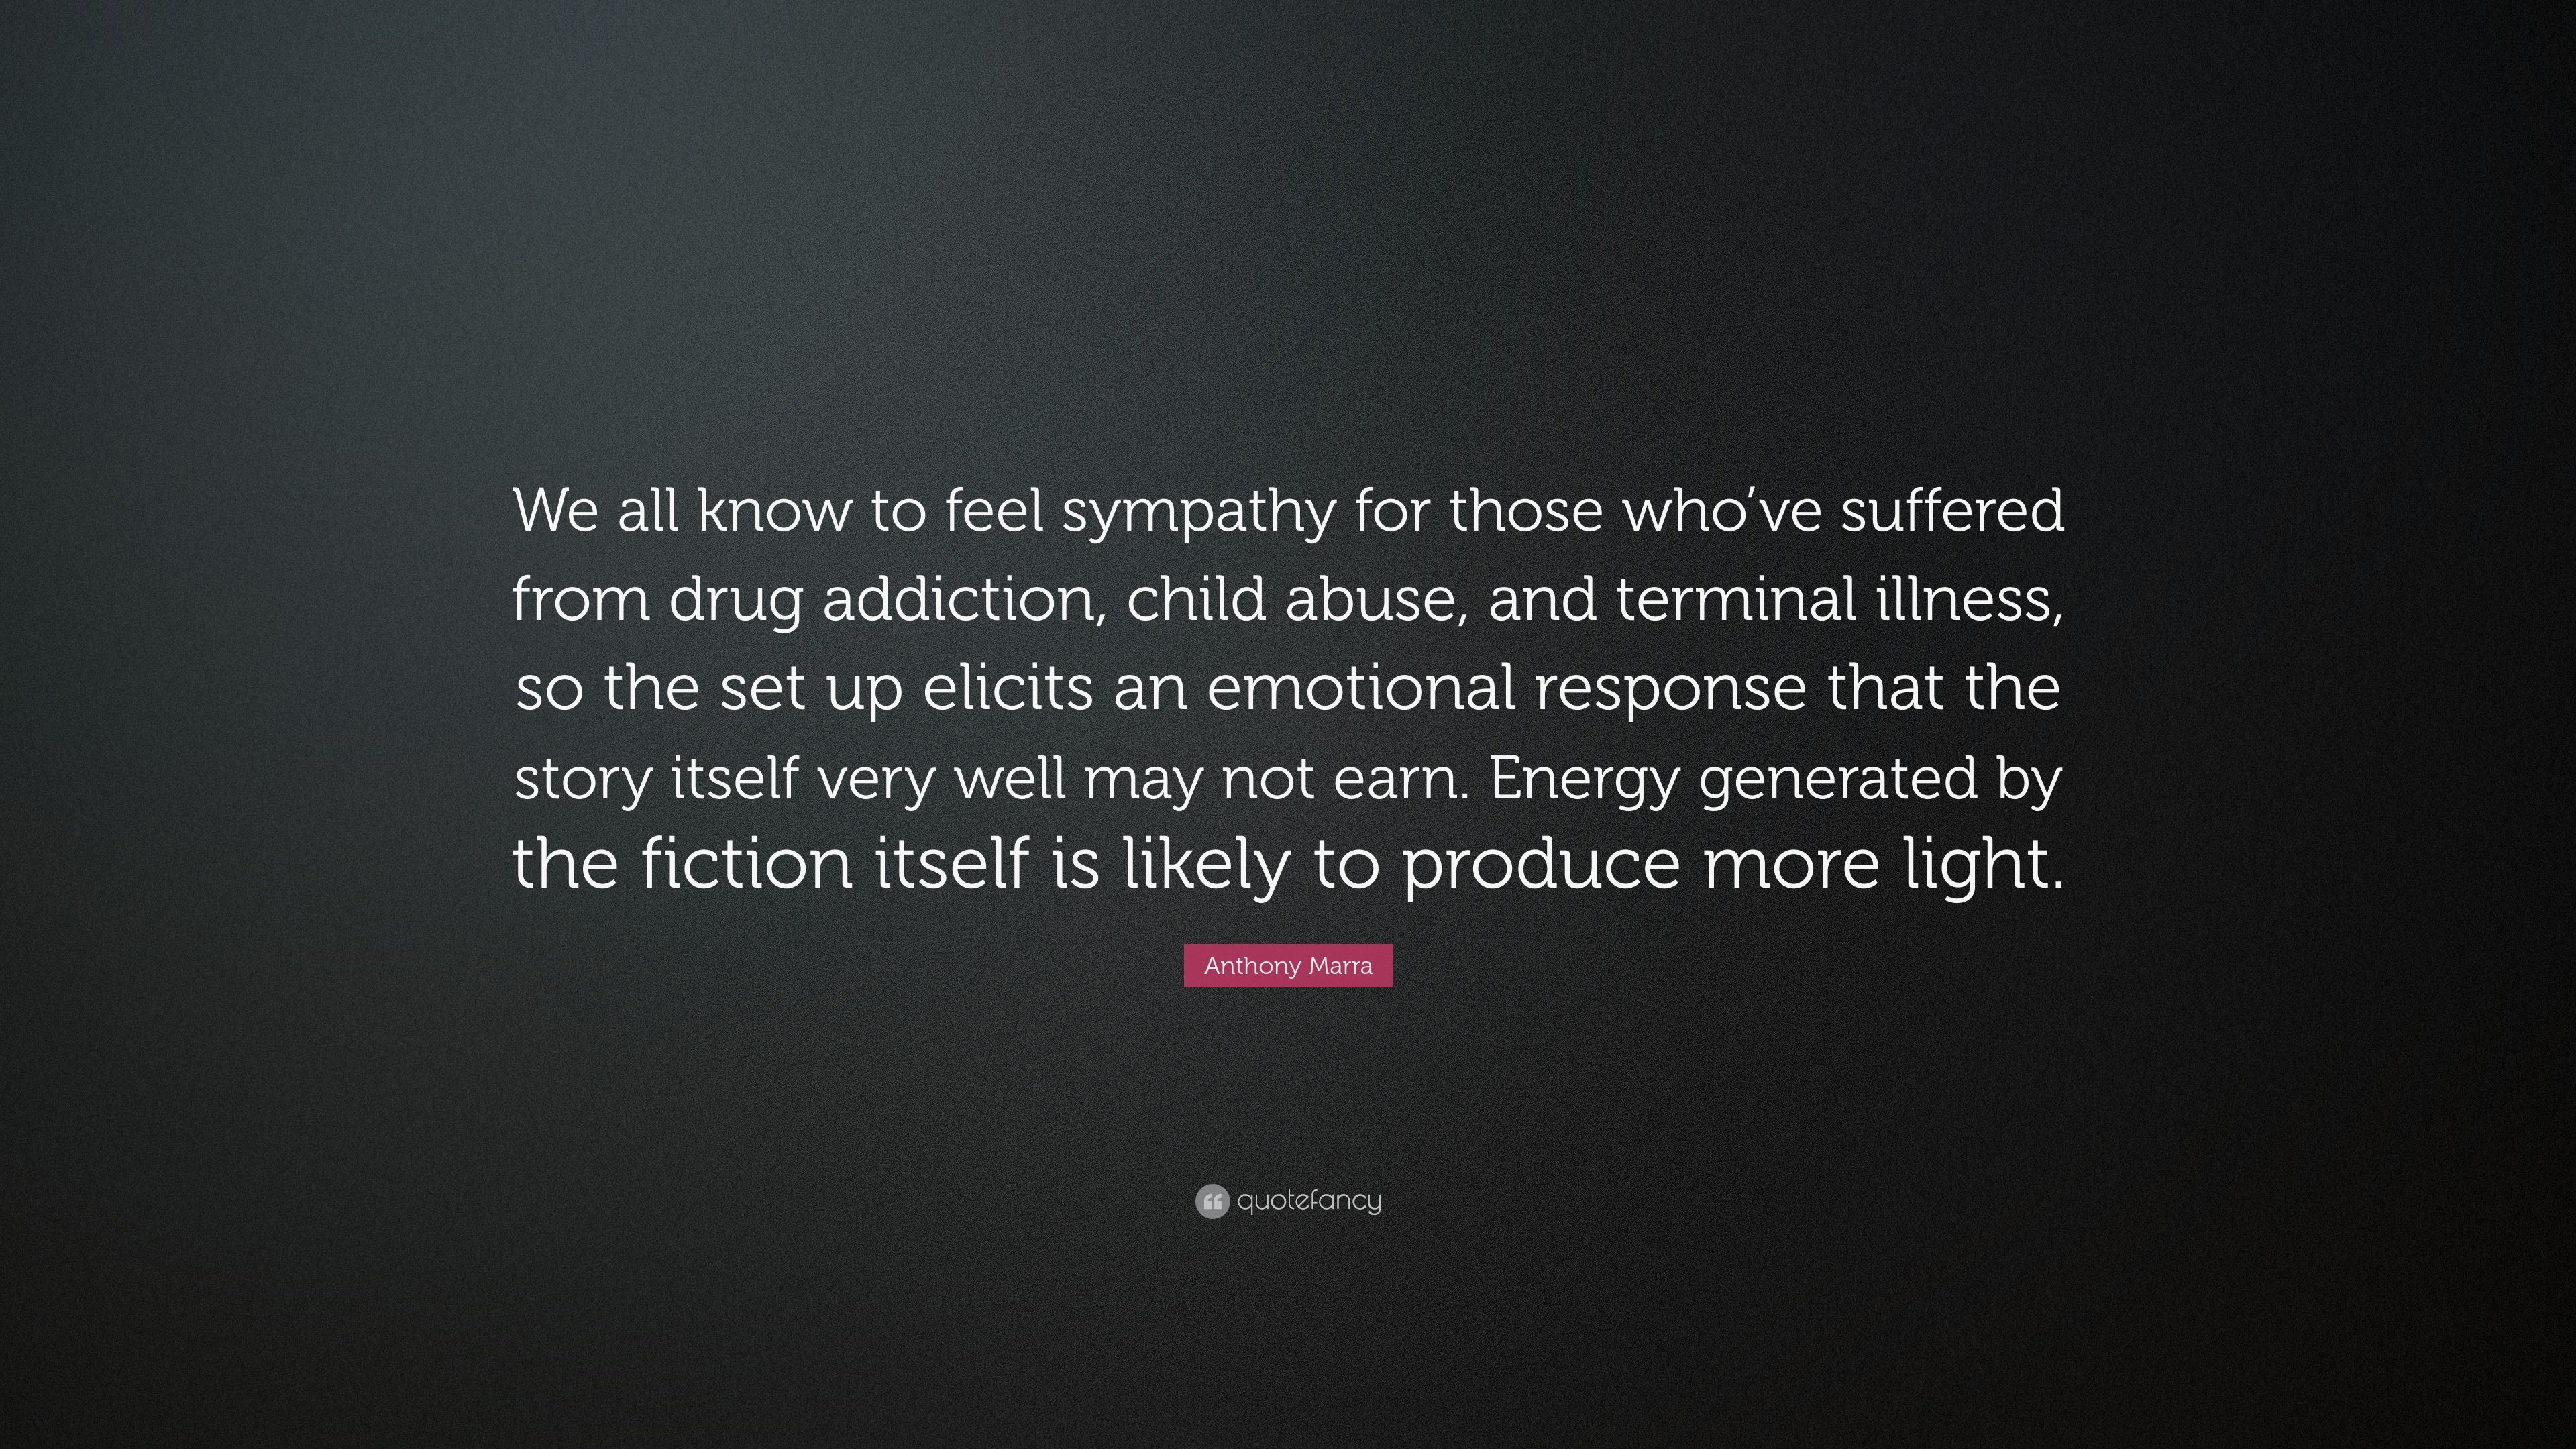 Anthony marra quote we all know to feel sympathy for those whove anthony marra quote we all know to feel sympathy for those whove thecheapjerseys Gallery